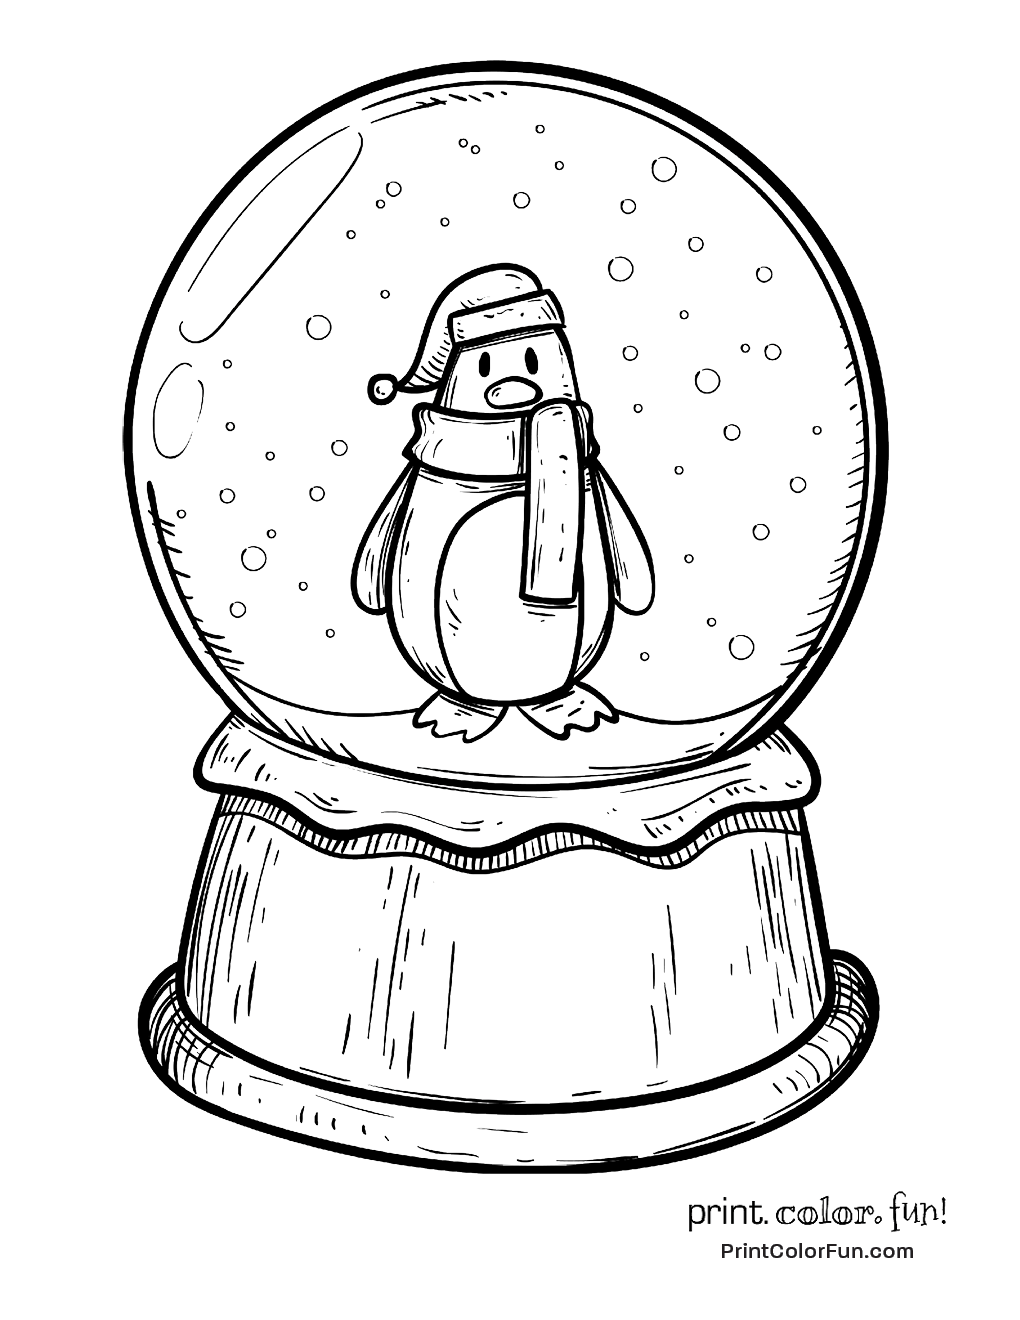 Download And Print Your Page Here Penguin Coloring Pages Globe Drawing Penguin Coloring